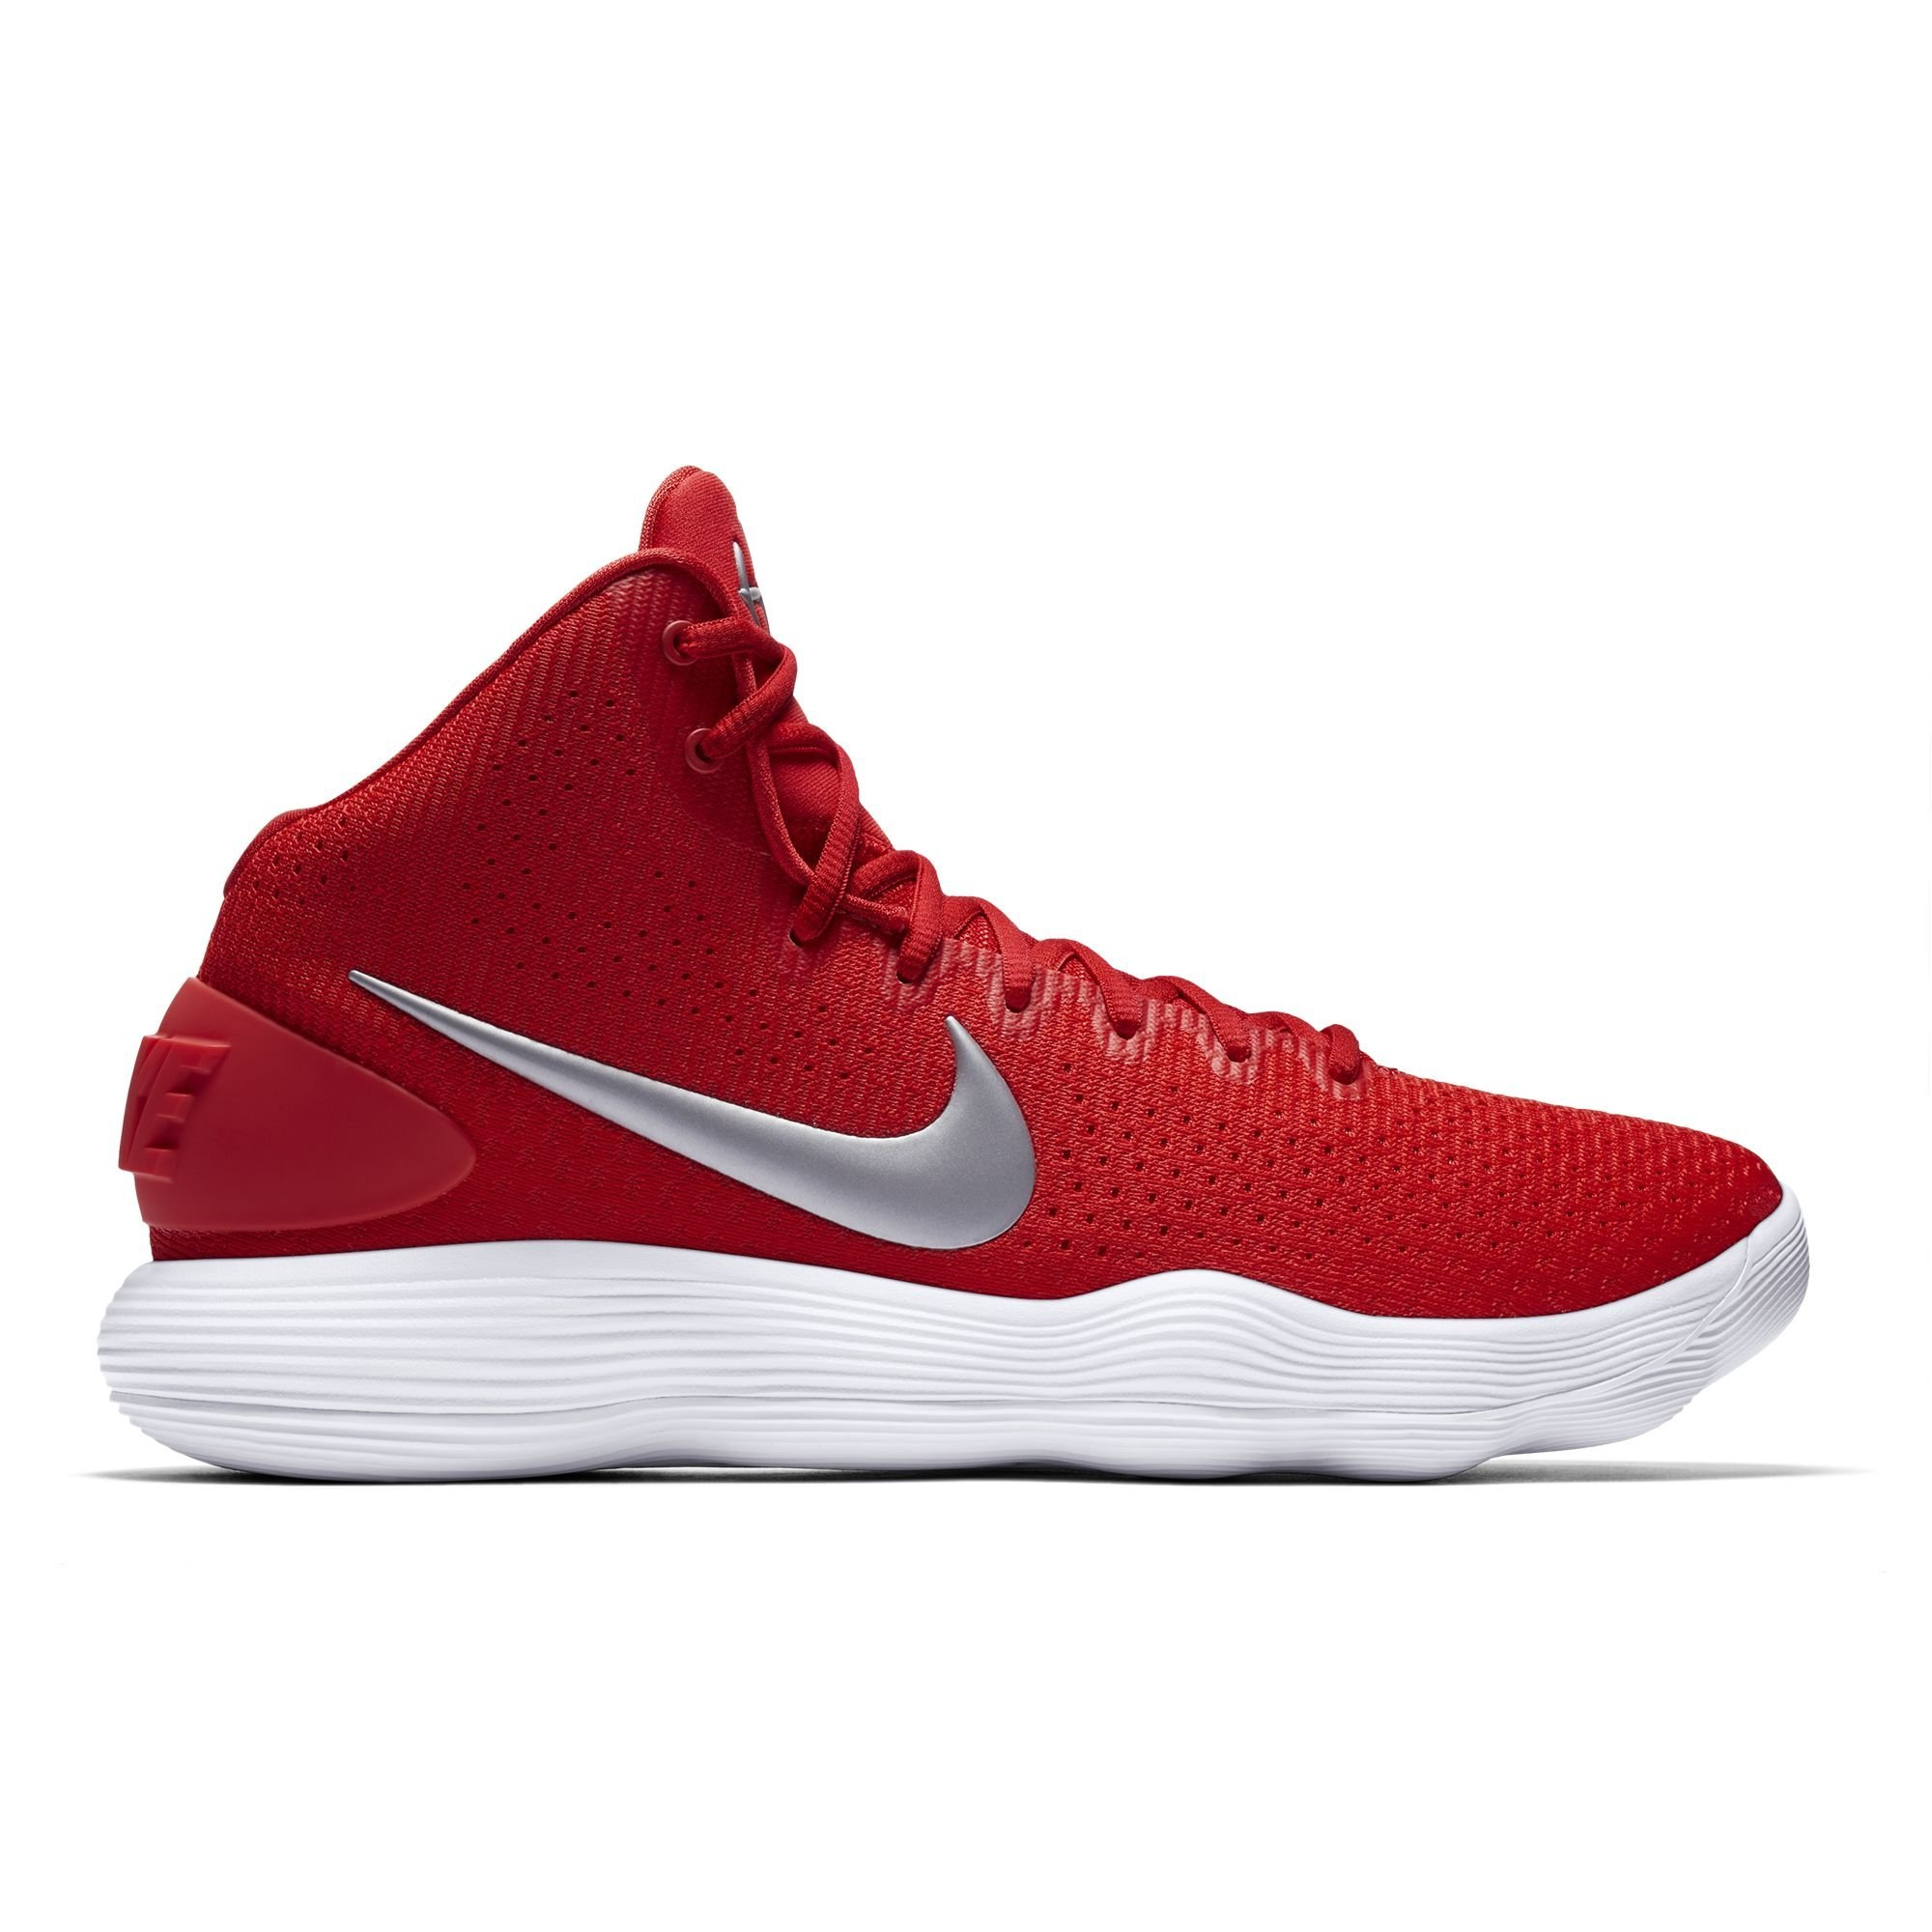 NIKE Men's Hyperdunk 2017 TB Basketball Shoe University Red/Metallic Silver/White Size 8 M US